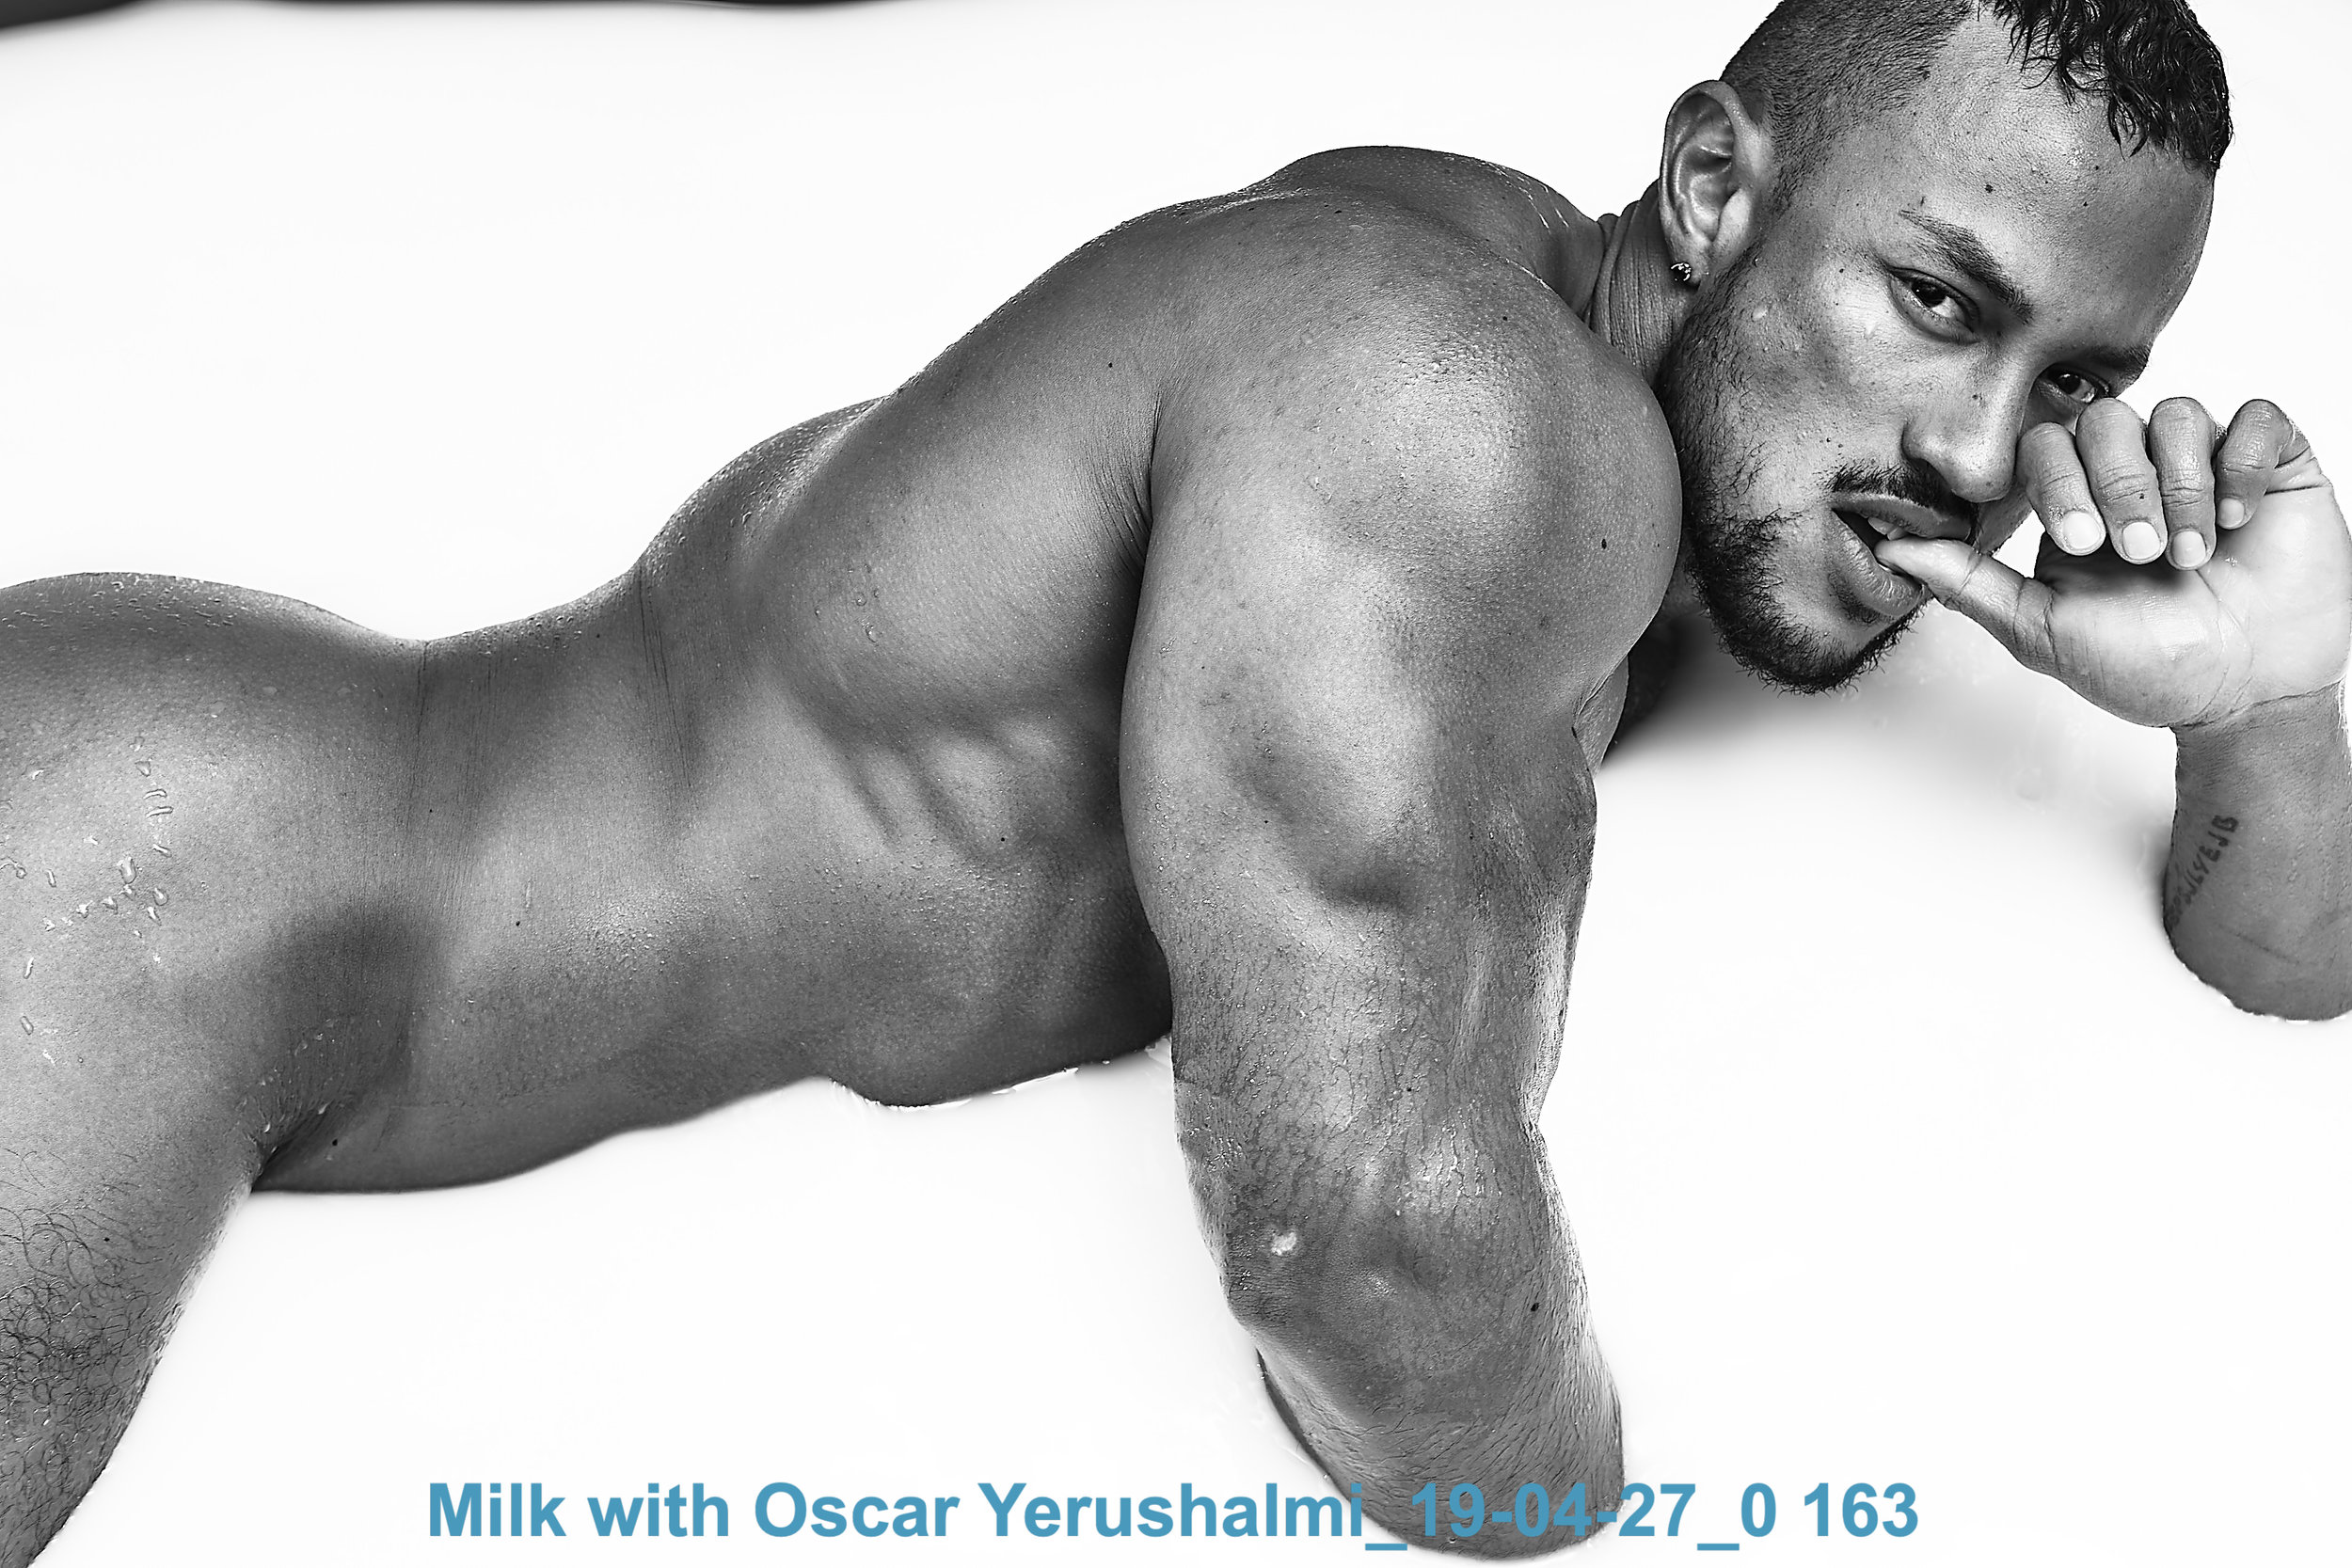 Milk with Oscar Yerushalmi_19-04-27_0 163.jpg